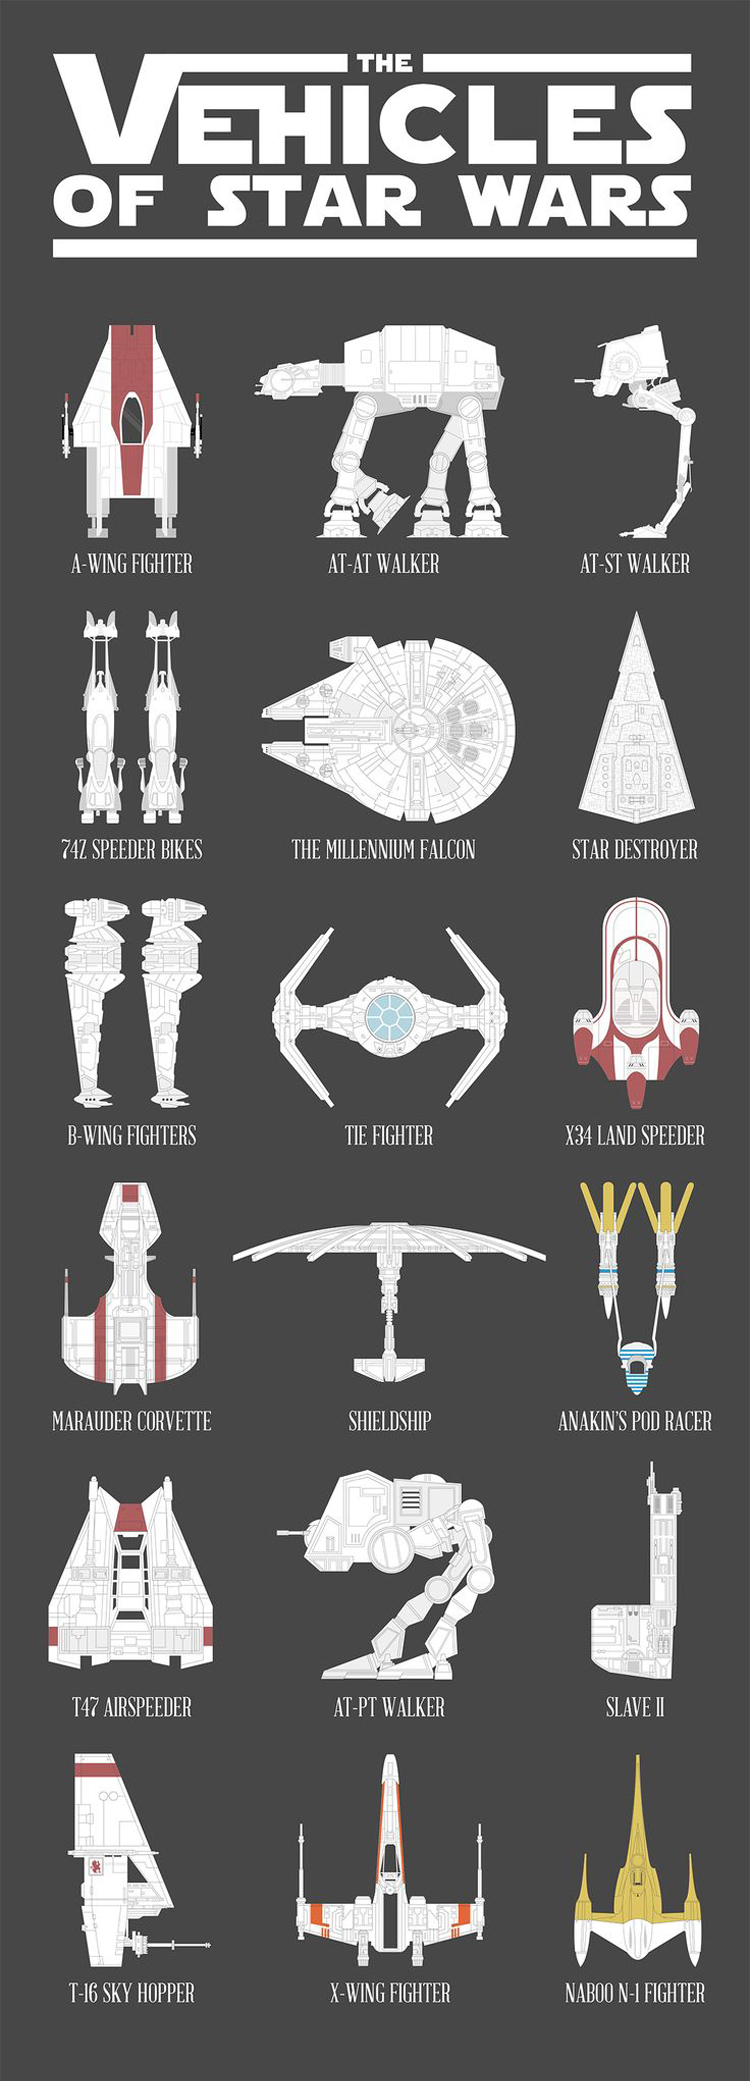 Vehicles Of Star Wars Infographic